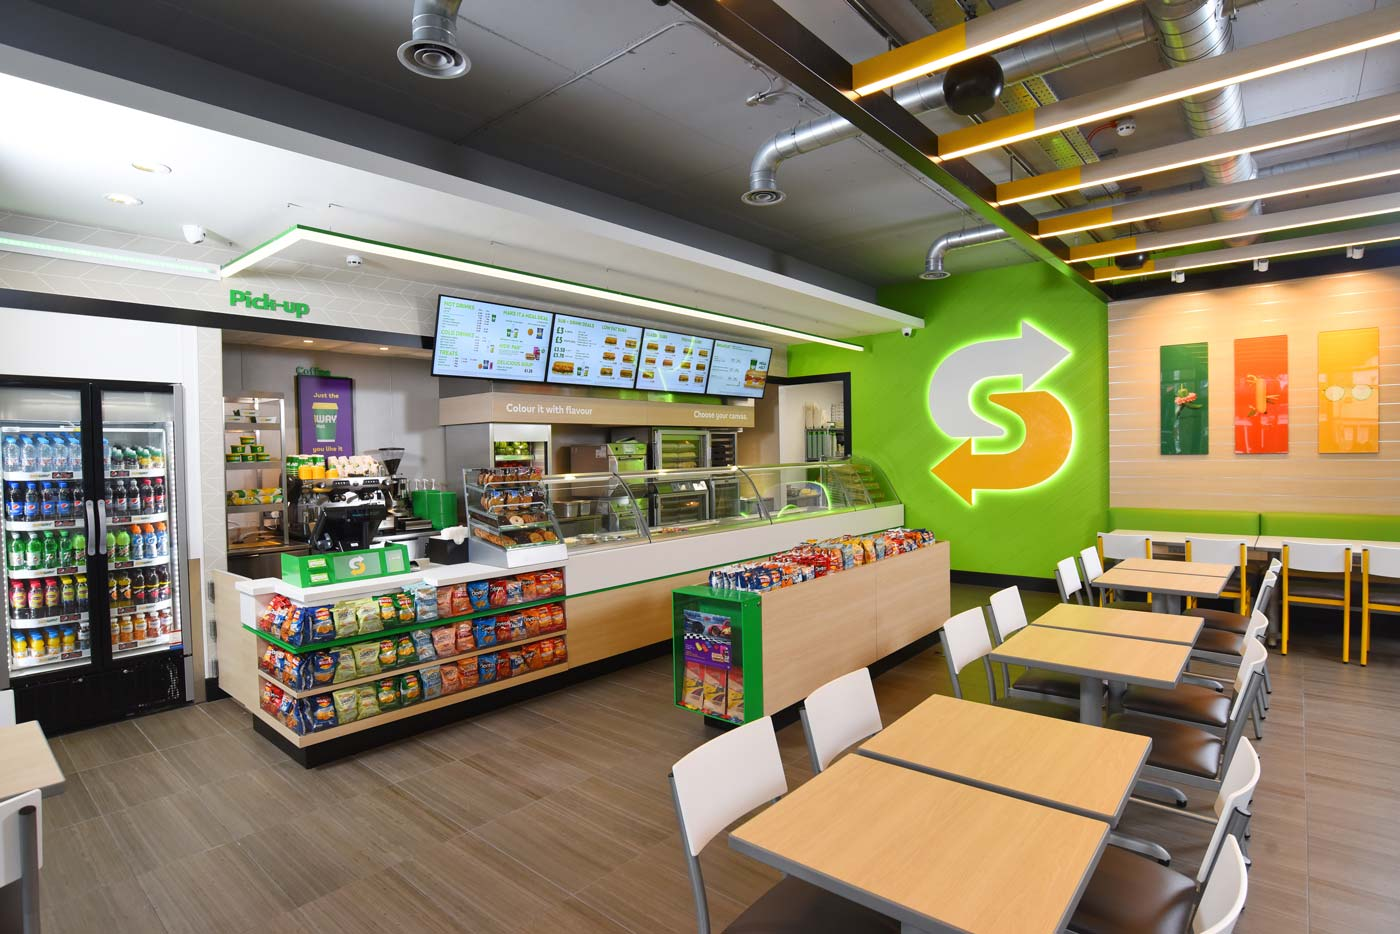 Subway restaurant with digital signage